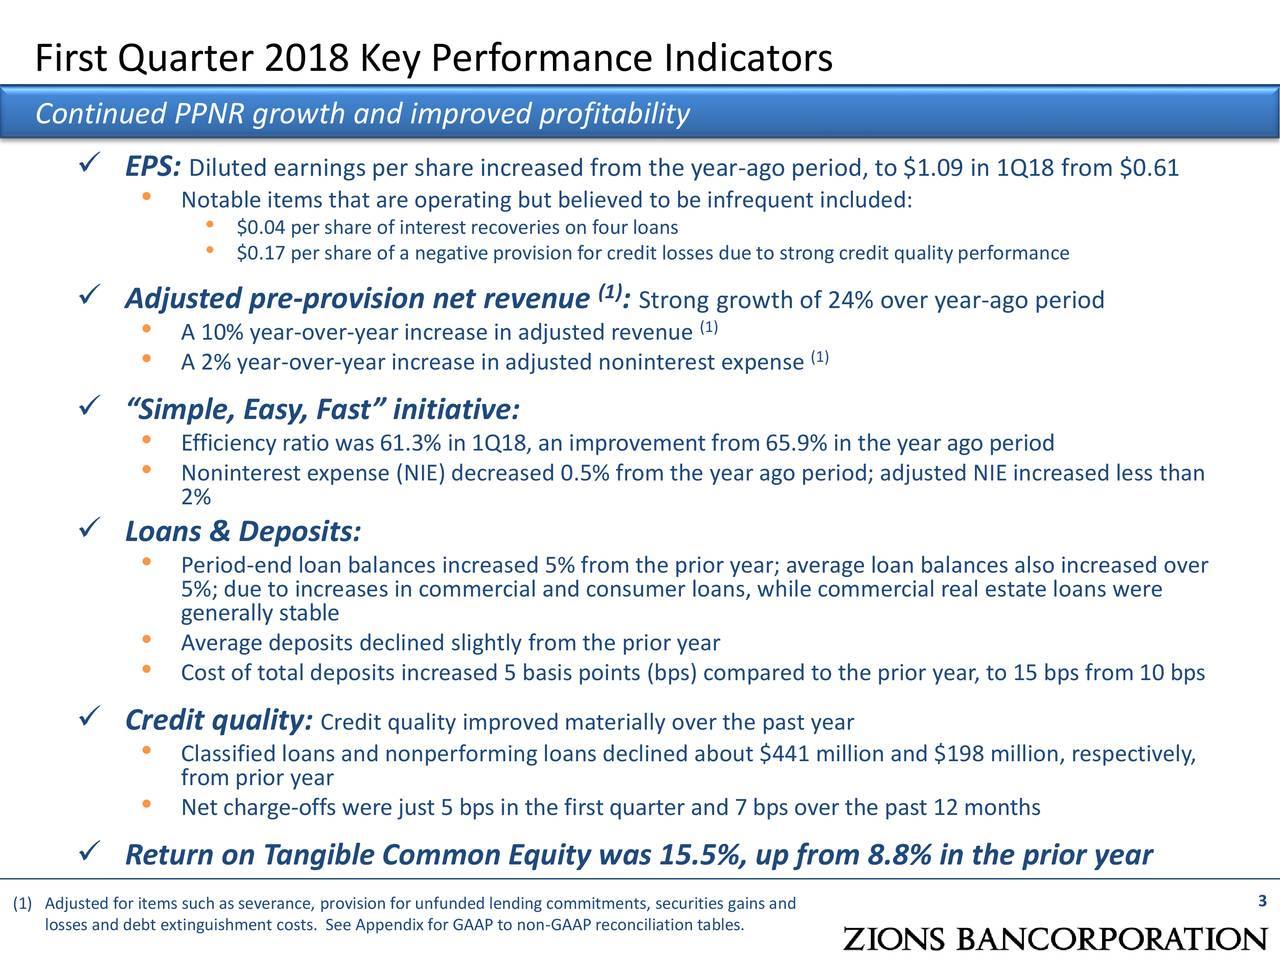 """Continued PPNR growth and improved profitability ✓ EPS: Diluted earnings per share increased from the year-ago period, to $1.09 in 1Q18 from $0.61 • Notable items that are operating but believed to be infrequent included: • $0.17 per share of a negative provision for credit losses due to strong credit qualityperformance ✓ Adjusted pre-provision net revenue : (1) Strong growth of 24% over year-ago period • A 10% year-over-year increase in adjusted revenue(1) • A 2% year-over-year increase in adjusted noninterest expense(1) ✓ """"Simple, Easy, Fast"""" initiative: • Efficiency ratio was 61.3% in 1Q18, an improvement from 65.9% in the year ago period • 2%ninterest expense (NIE) decreased 0.5% from the year ago period; adjusted NIE increased less than ✓ Loans & Deposits: • Period-end loan balances increased 5% from the prior year; average loan balances also increased over 5%; due to increases in commercial and consumer loans, while commercial real estate loans were generally stable • Average deposits declined slightly from the prior year • Cost of total deposits increased 5 basis points (bps) compared to the prior year, to 15 bps from 10 bps ✓ Credit quality: Credit quality improved materially over the past year • Classified loans and nonperforming loans declined about $441 million and $198 million, respectively, from prior year • Net charge-offs were just 5 bps in the first quarter and 7 bps over the past 12 months ✓ Return on Tangible Common Equity was 15.5%, up from 8.8% in the prior year (1) Adjusted for items such as severance, provision for unfunded lending commitments, securities gains and 3 losses and debt extinguishment costs. See Appendix for GAAP to non-GAAP reconciliation tables."""